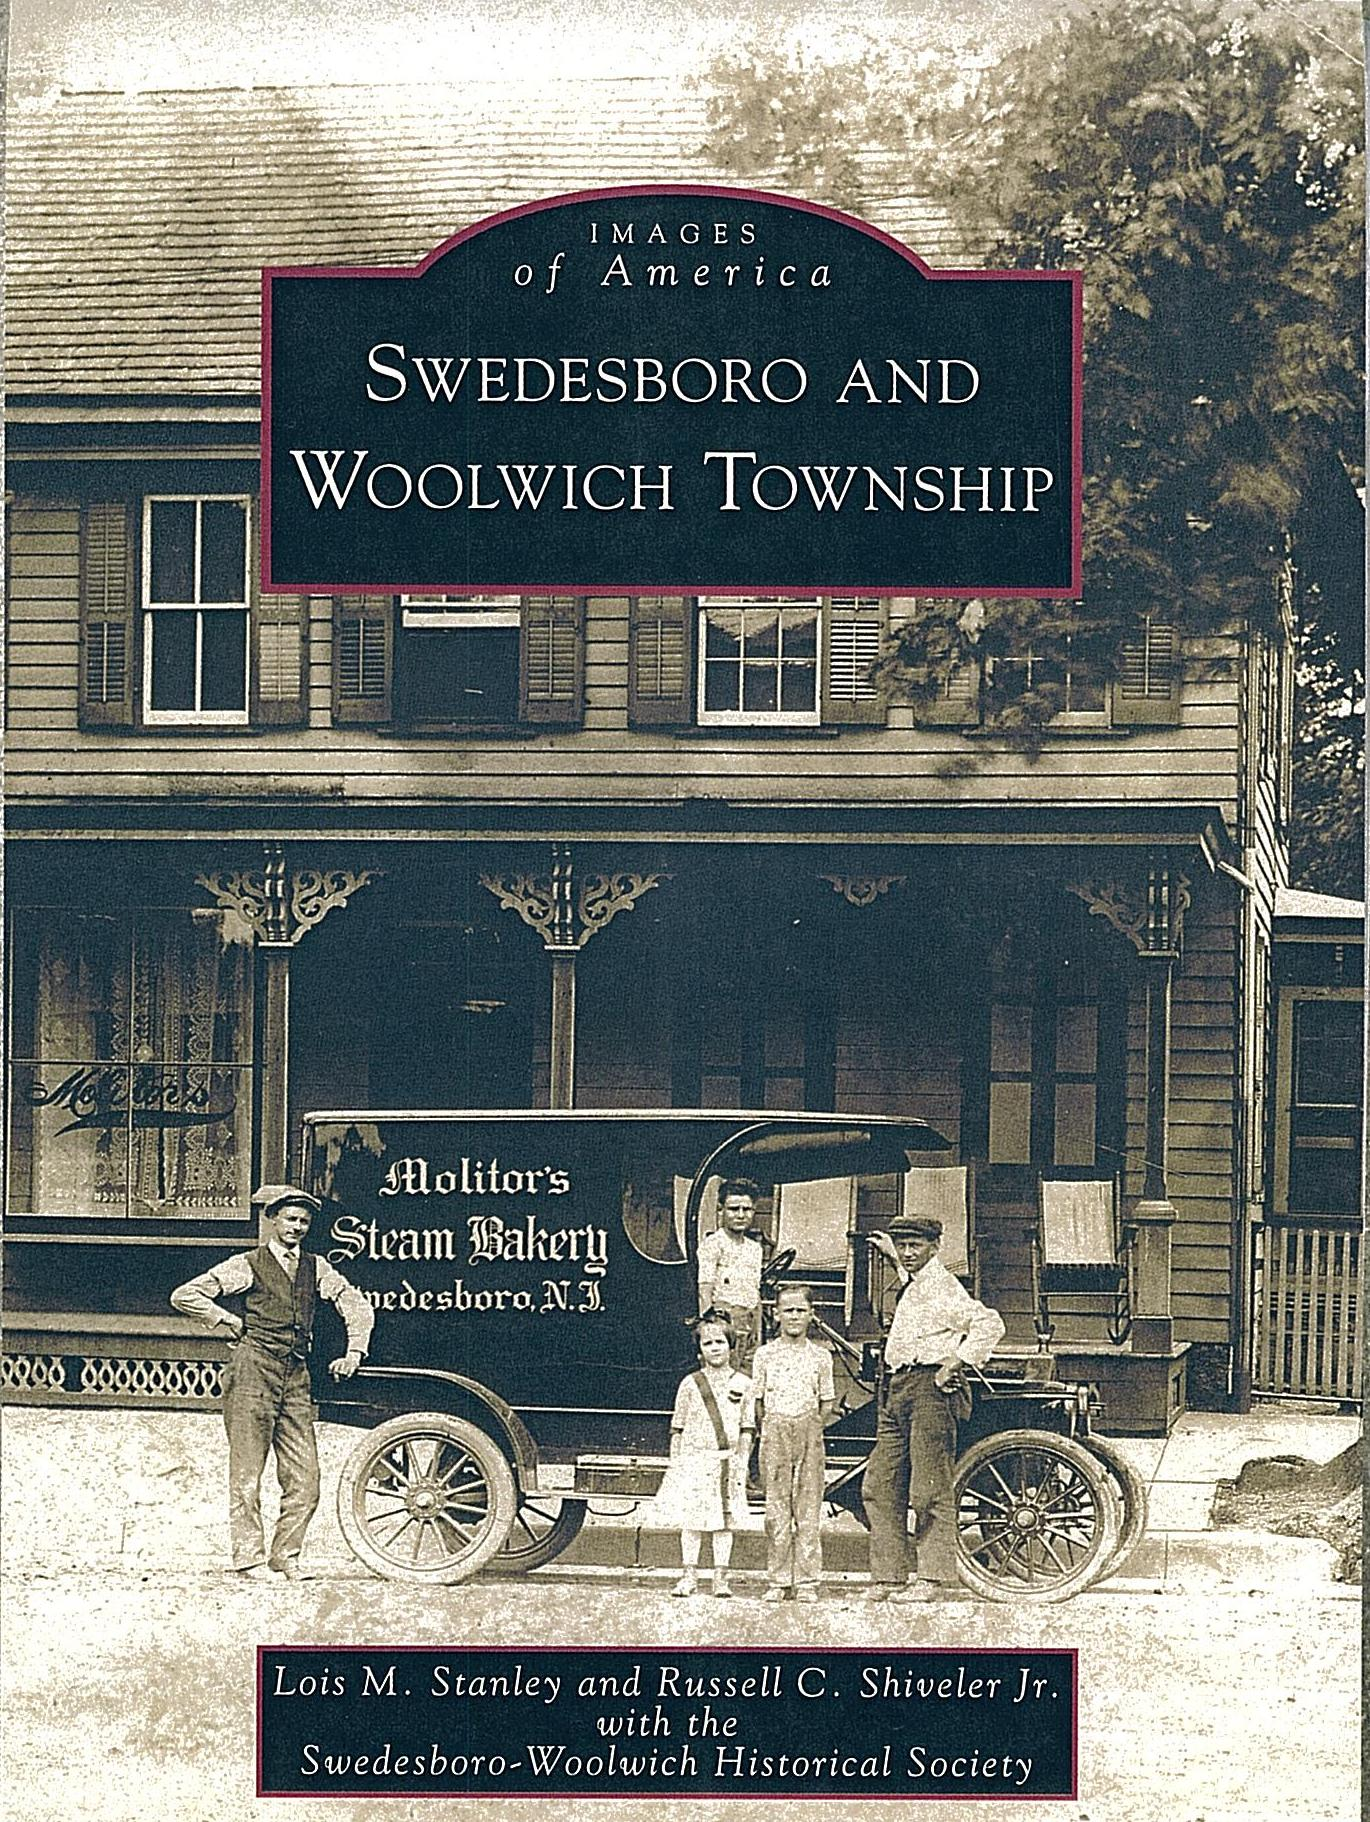 A History of Swedesboro & Woolwich Township